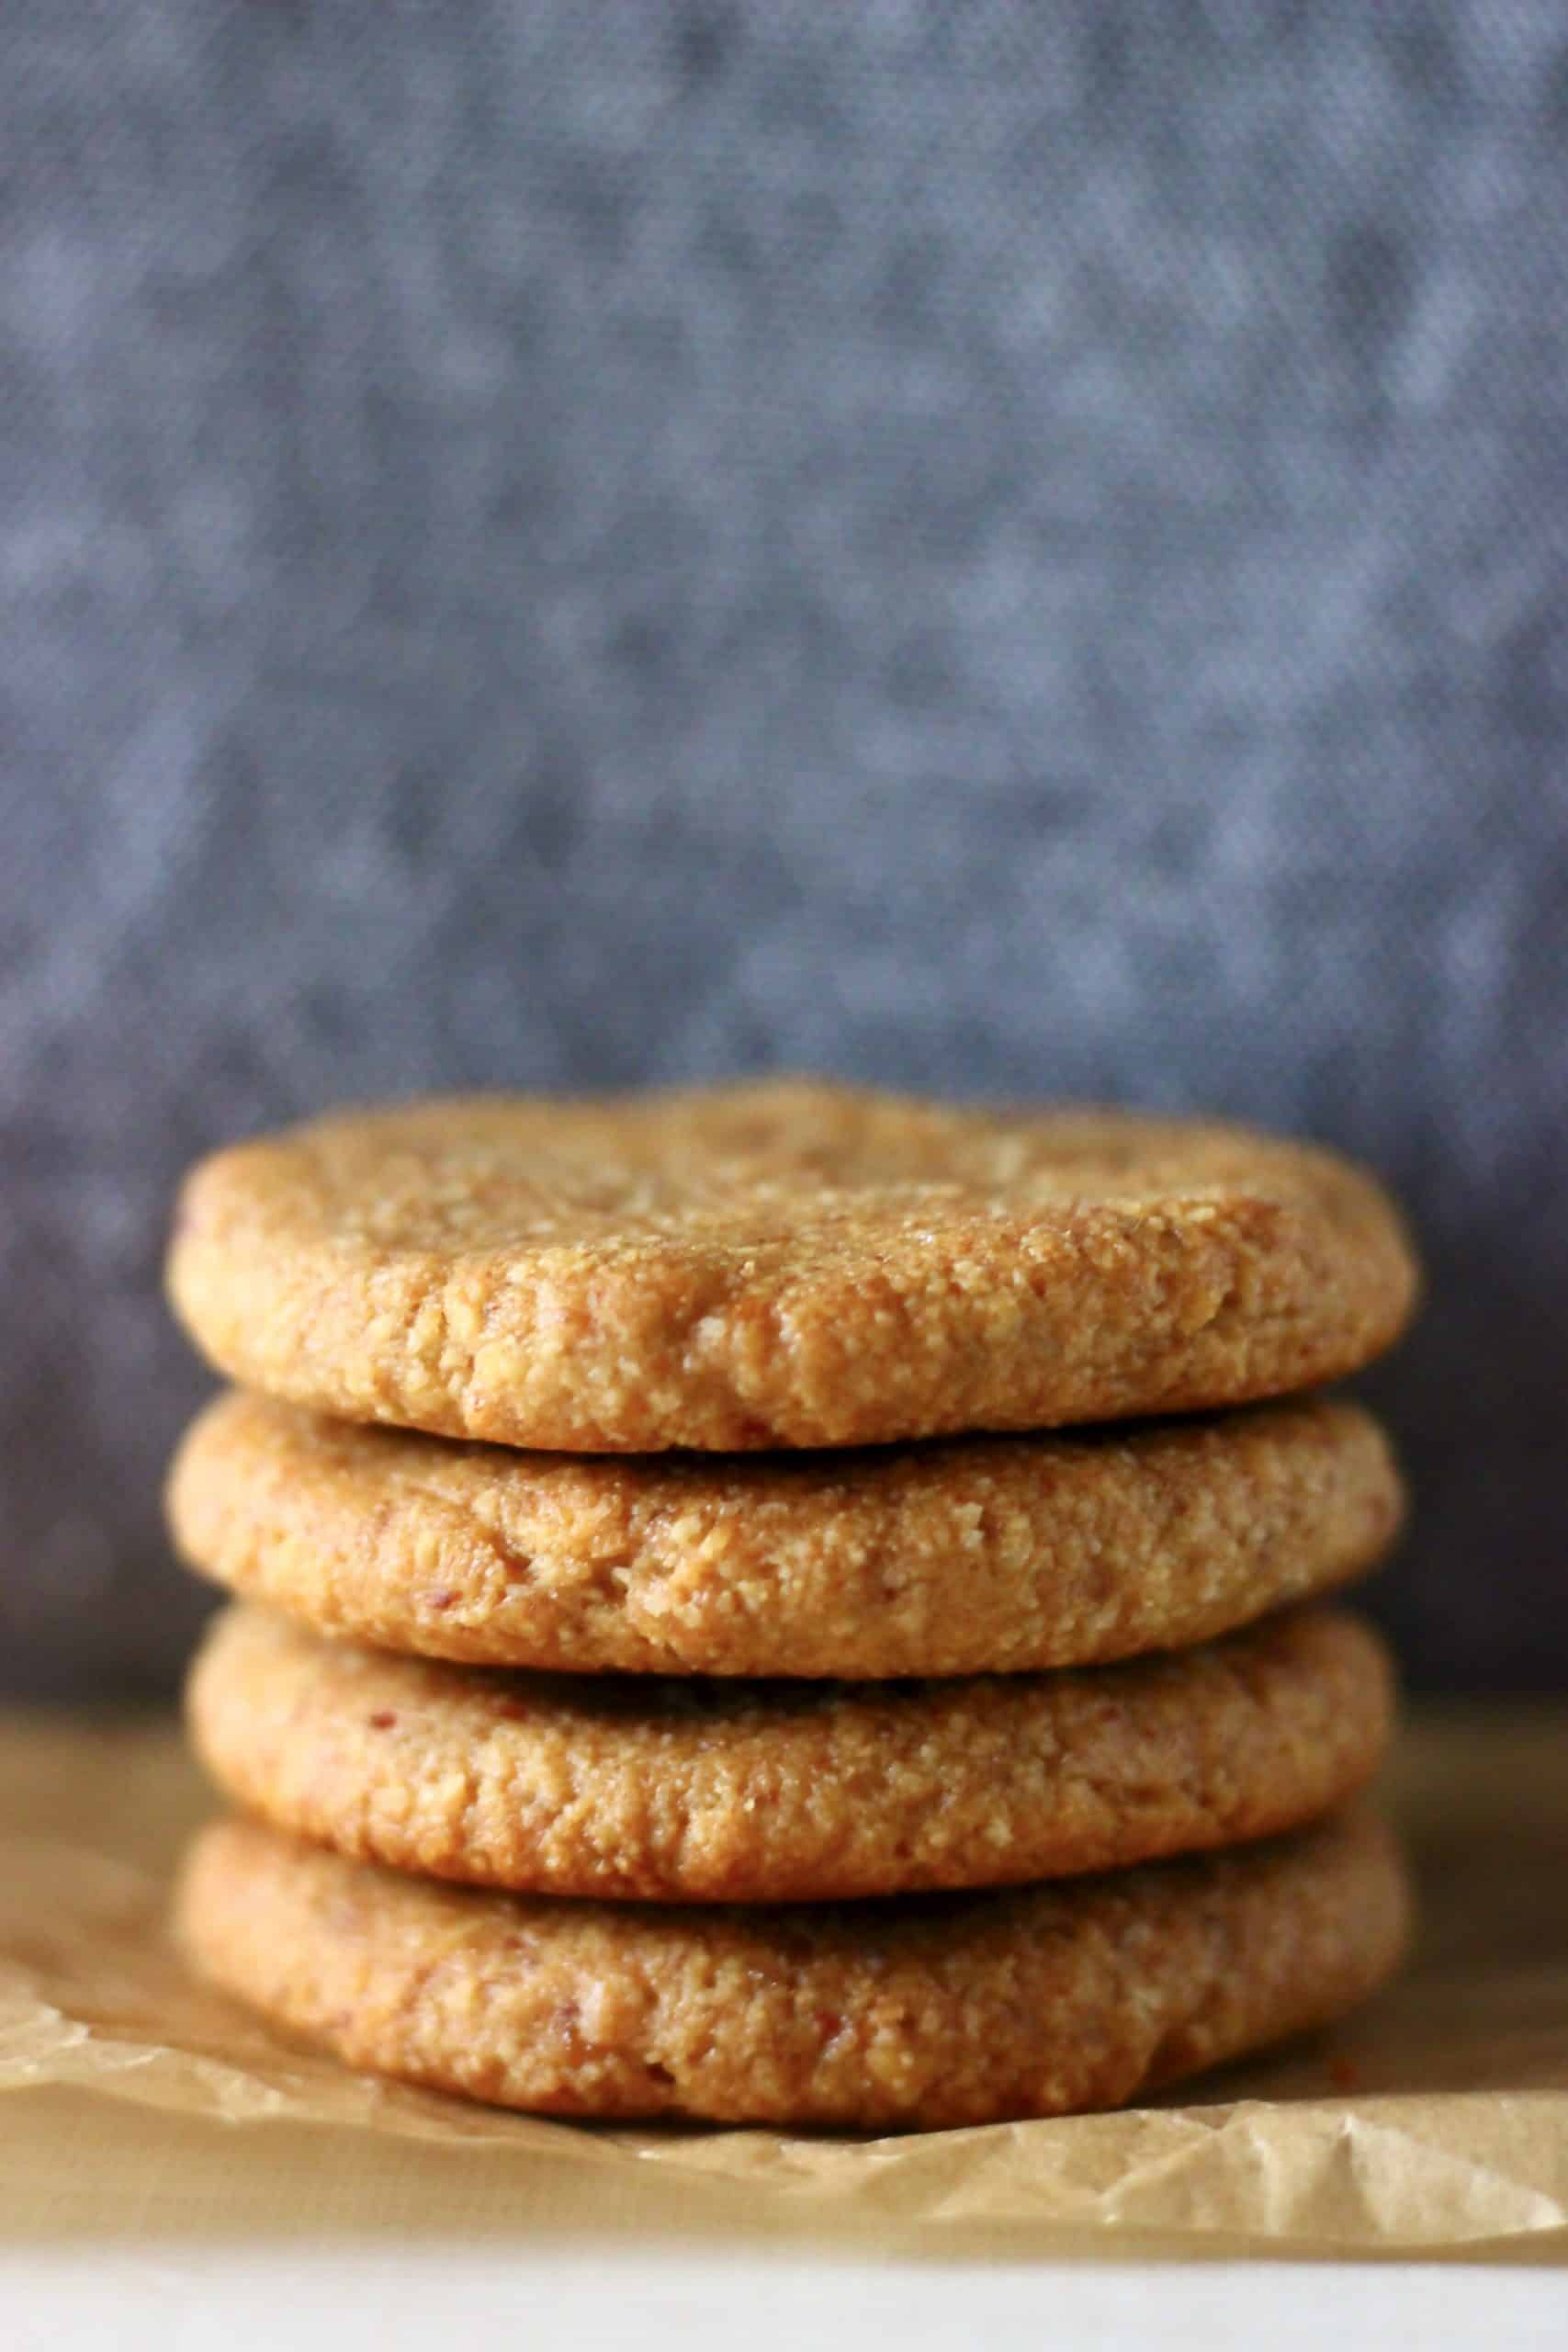 Four golden brown cookies stacked on top of each other on a sheet of brown baking paper